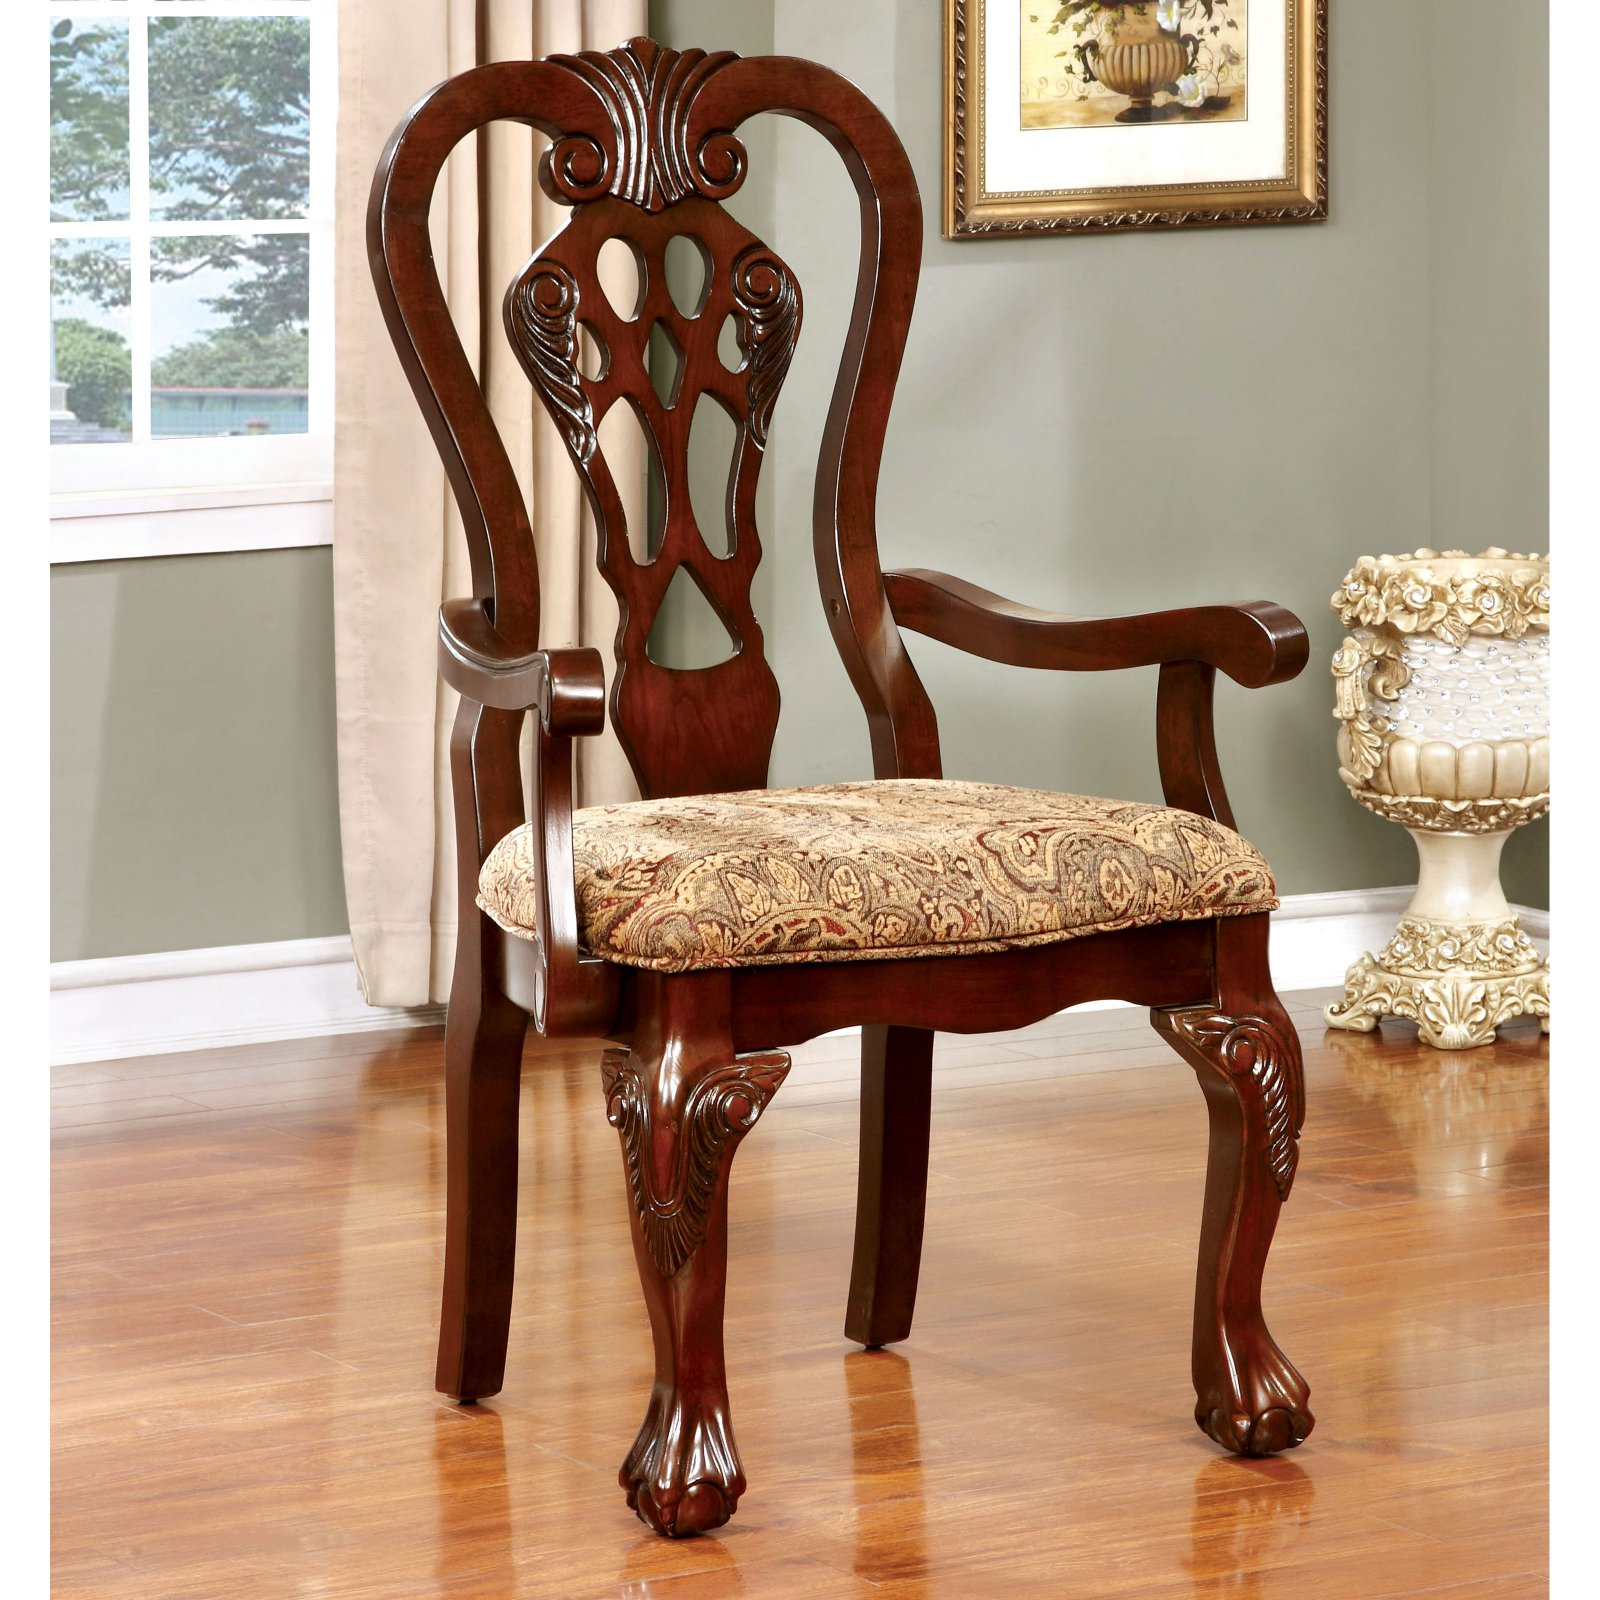 Furniture of America Dubelle Classic Dining Armchair Set of 2 by Enitial Lab